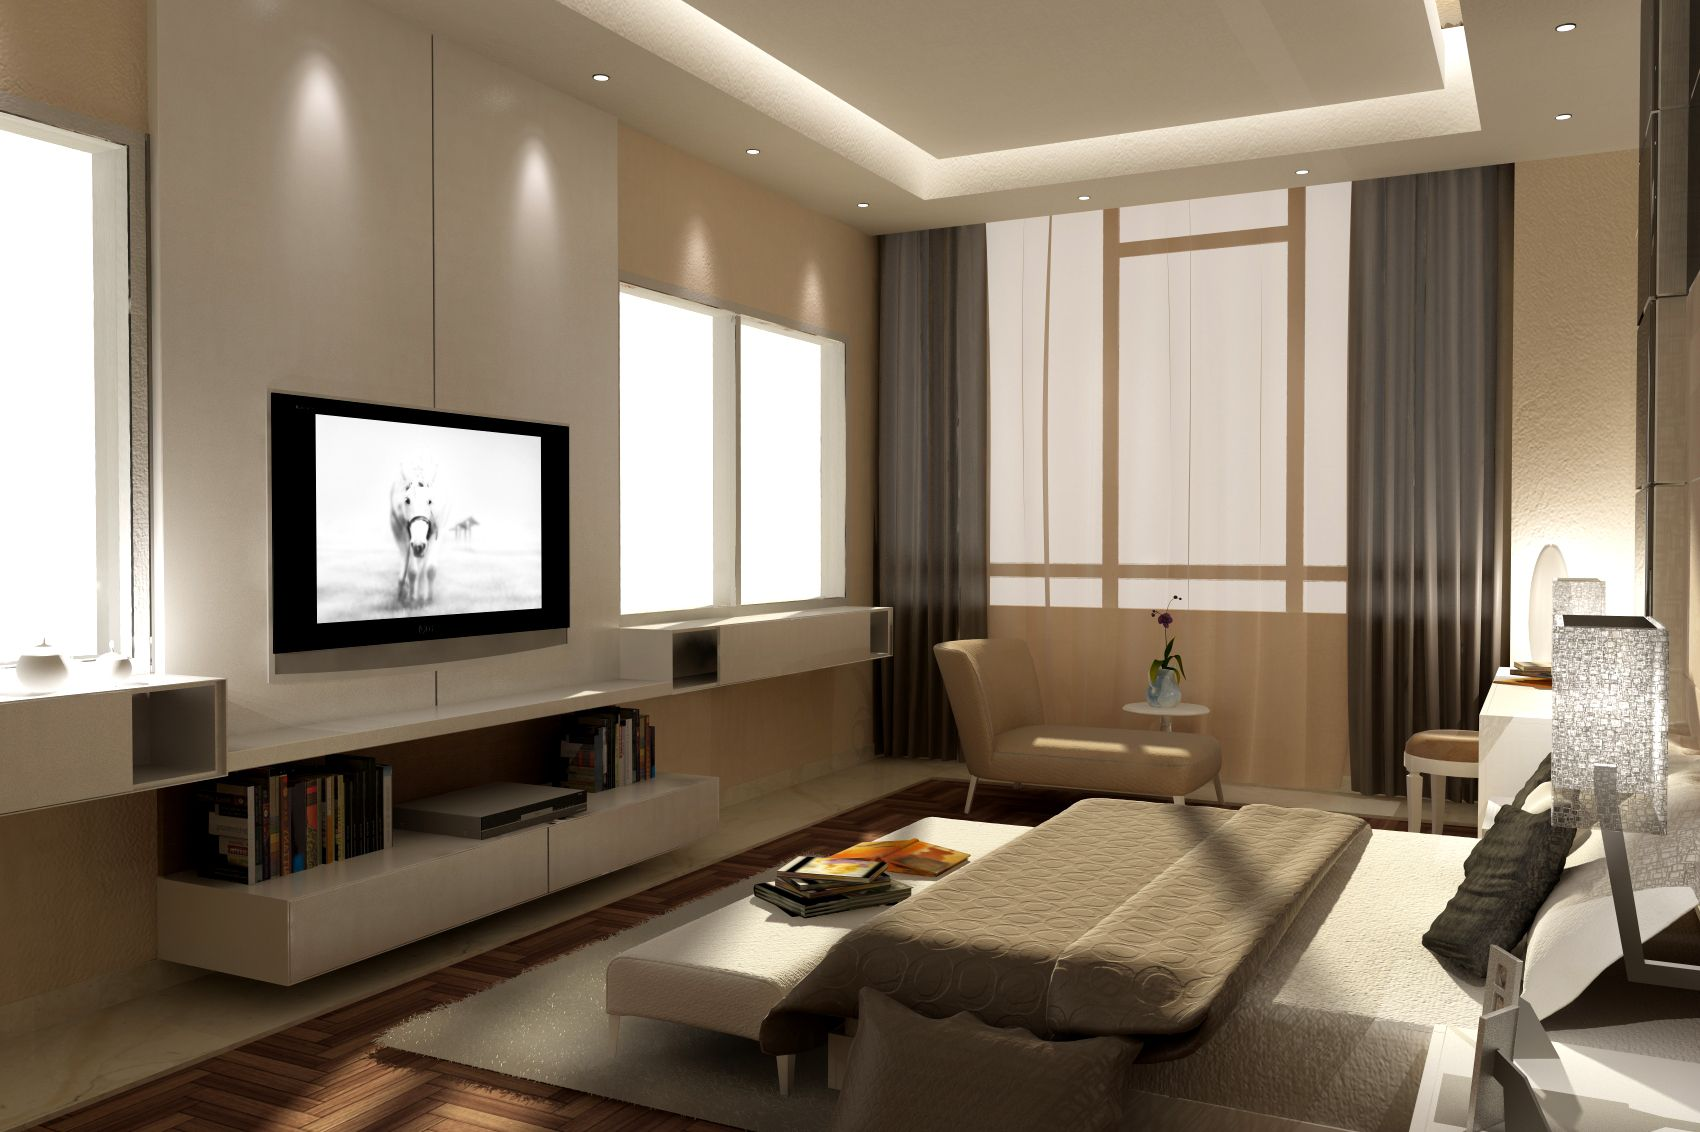 Bedroom modern bedroom interior design 3d max 3d for Modern bedroom interior